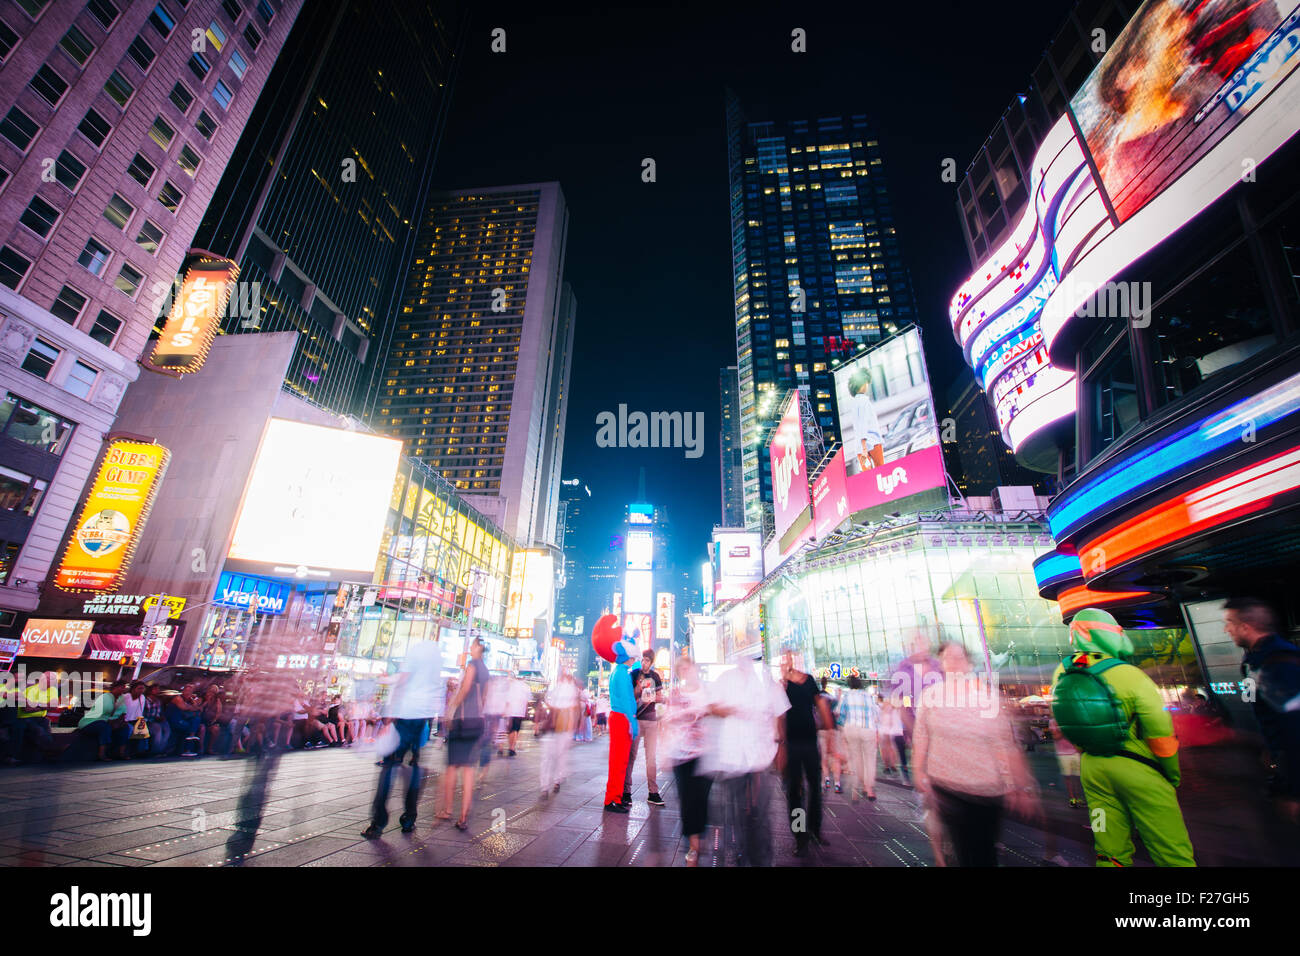 Times Square at night, in Midtown Manhattan, New York. - Stock Image